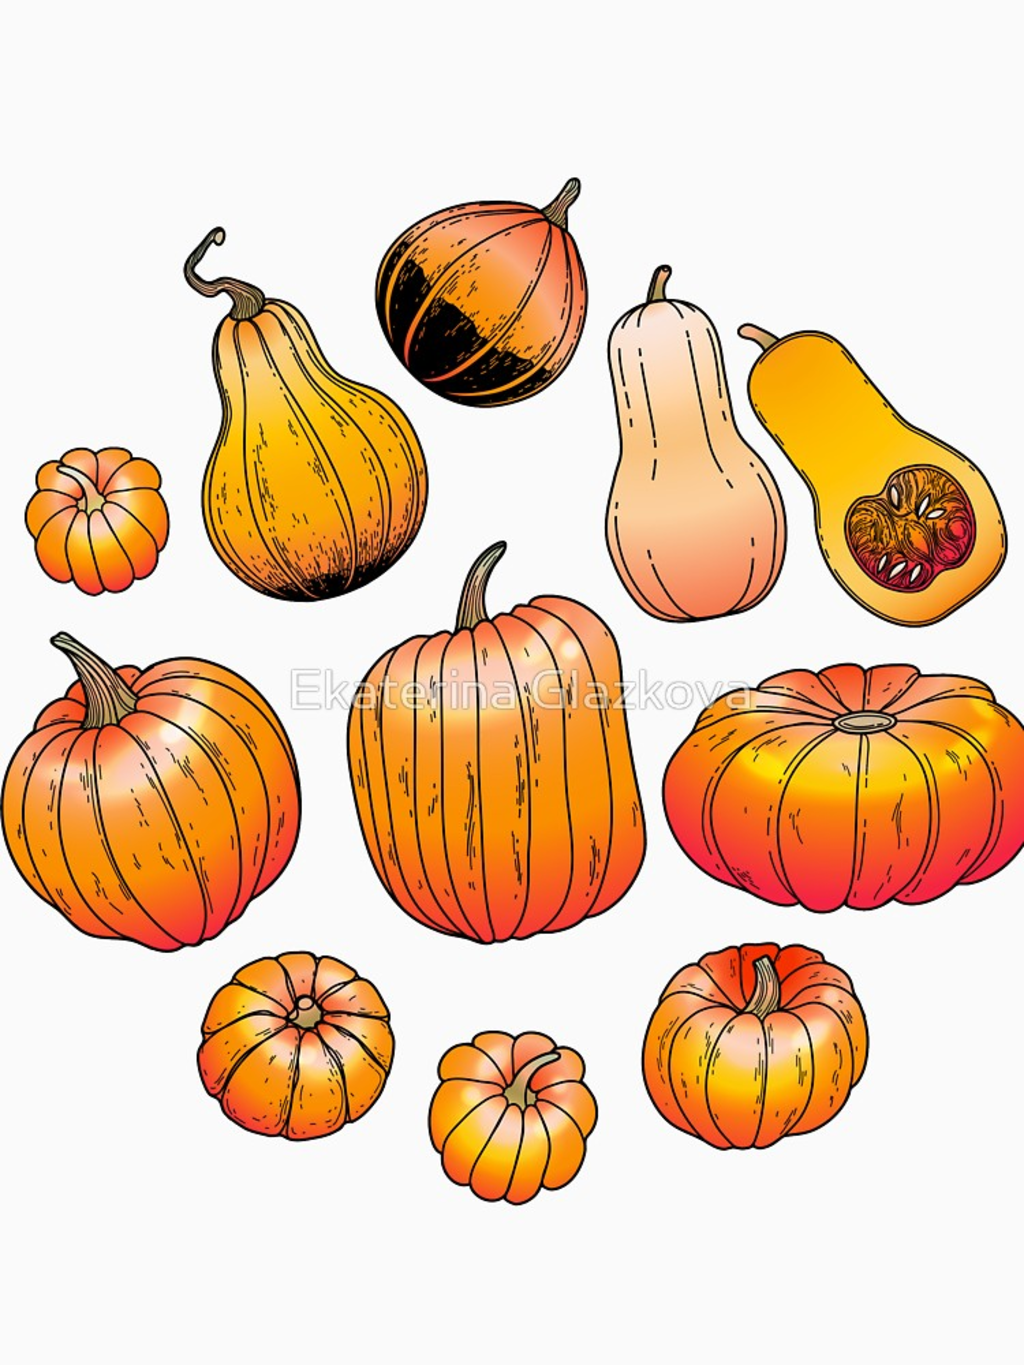 RedBubble: Graphic collection of pumpkins